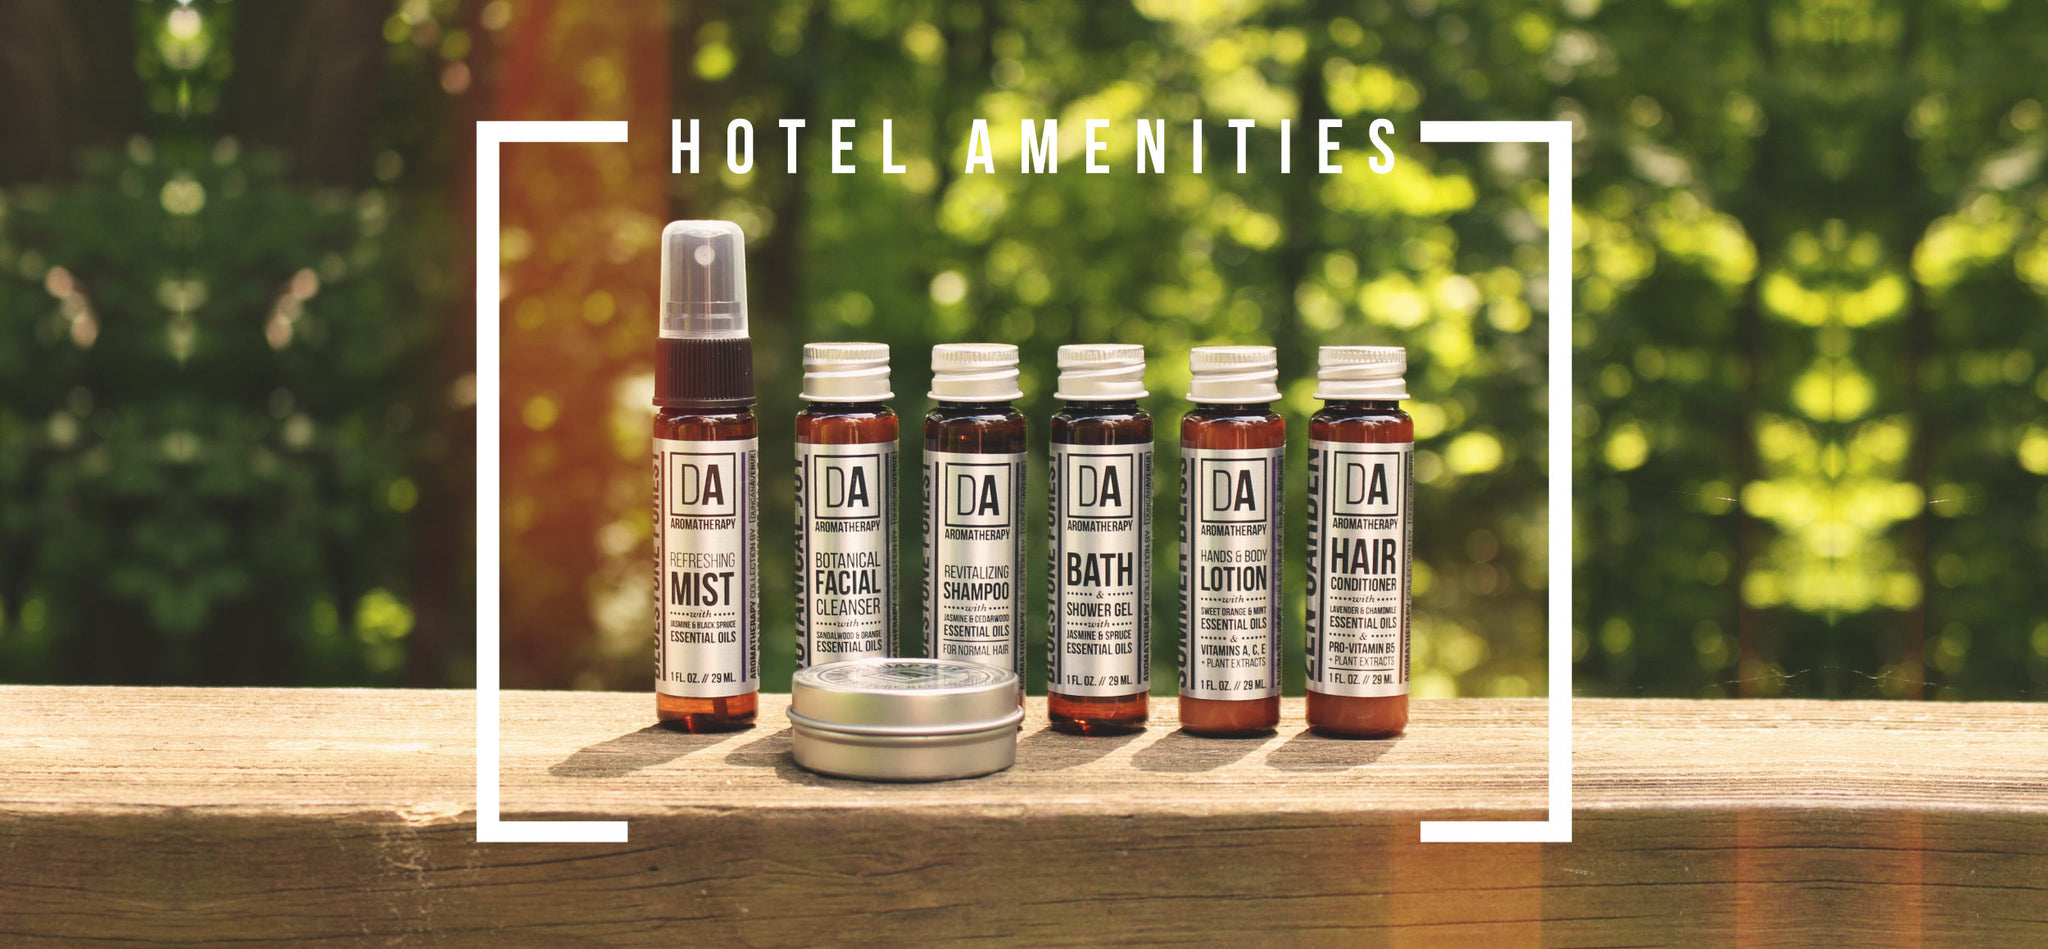 Our Hudson Valley-inspired Aromatherapy products will perfectly complement the sophisticated guest services your luxury boutique hotel or authentic bed and breakfast offers.